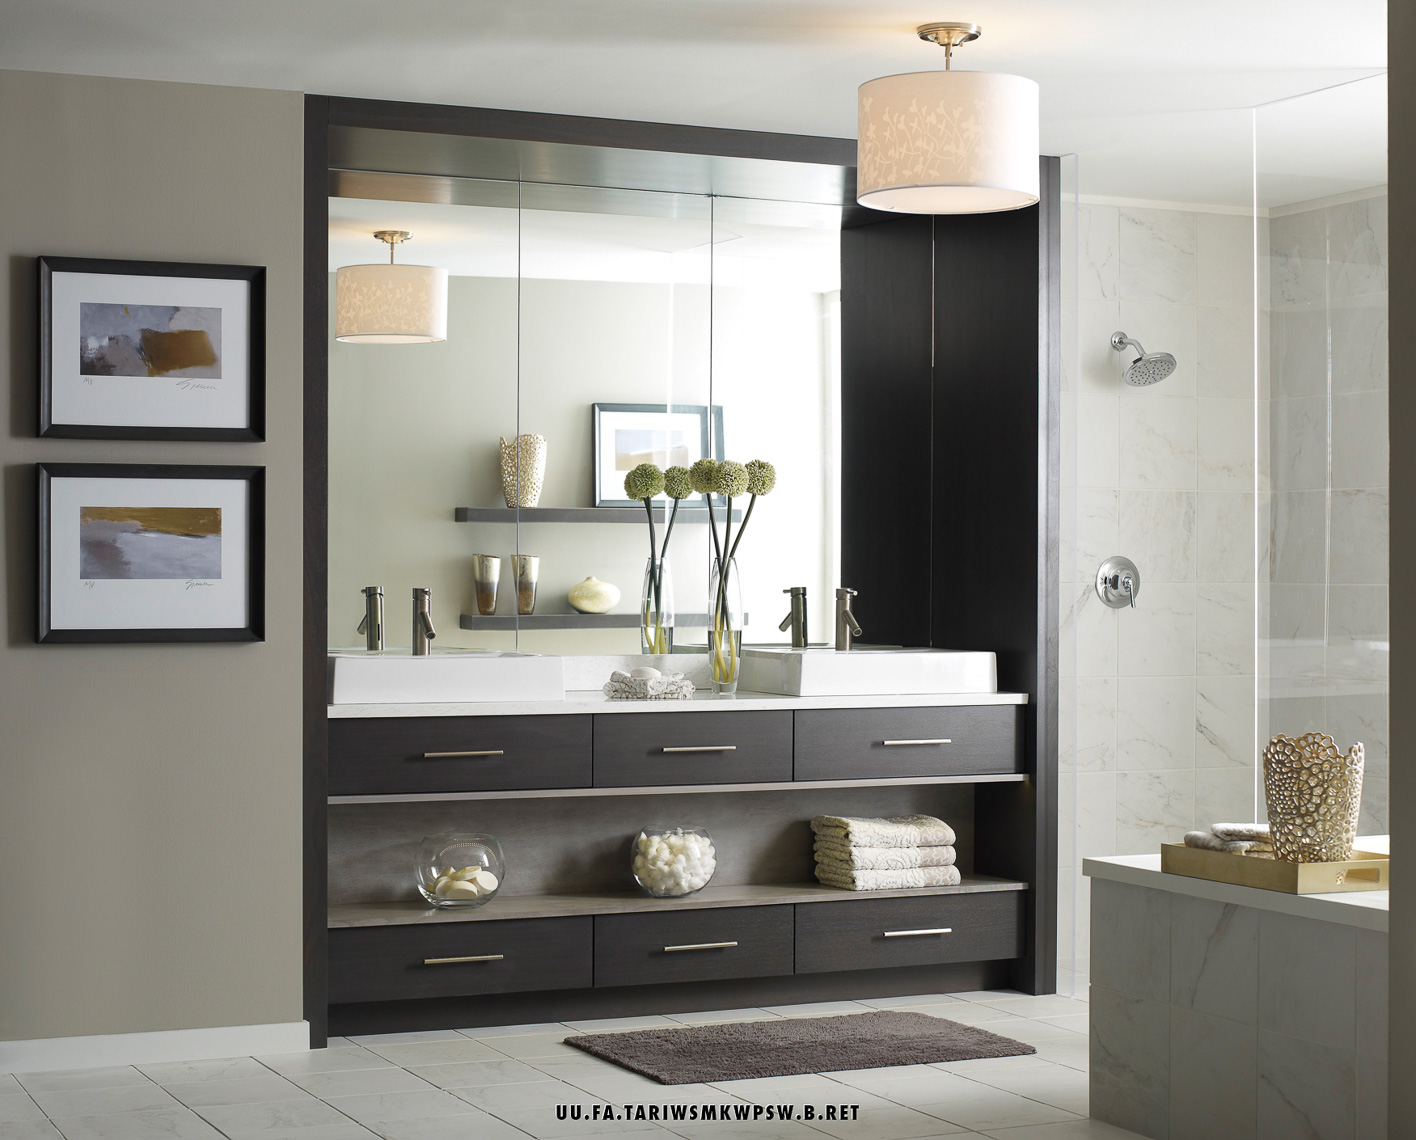 03-OmegaBathCabinetry_04